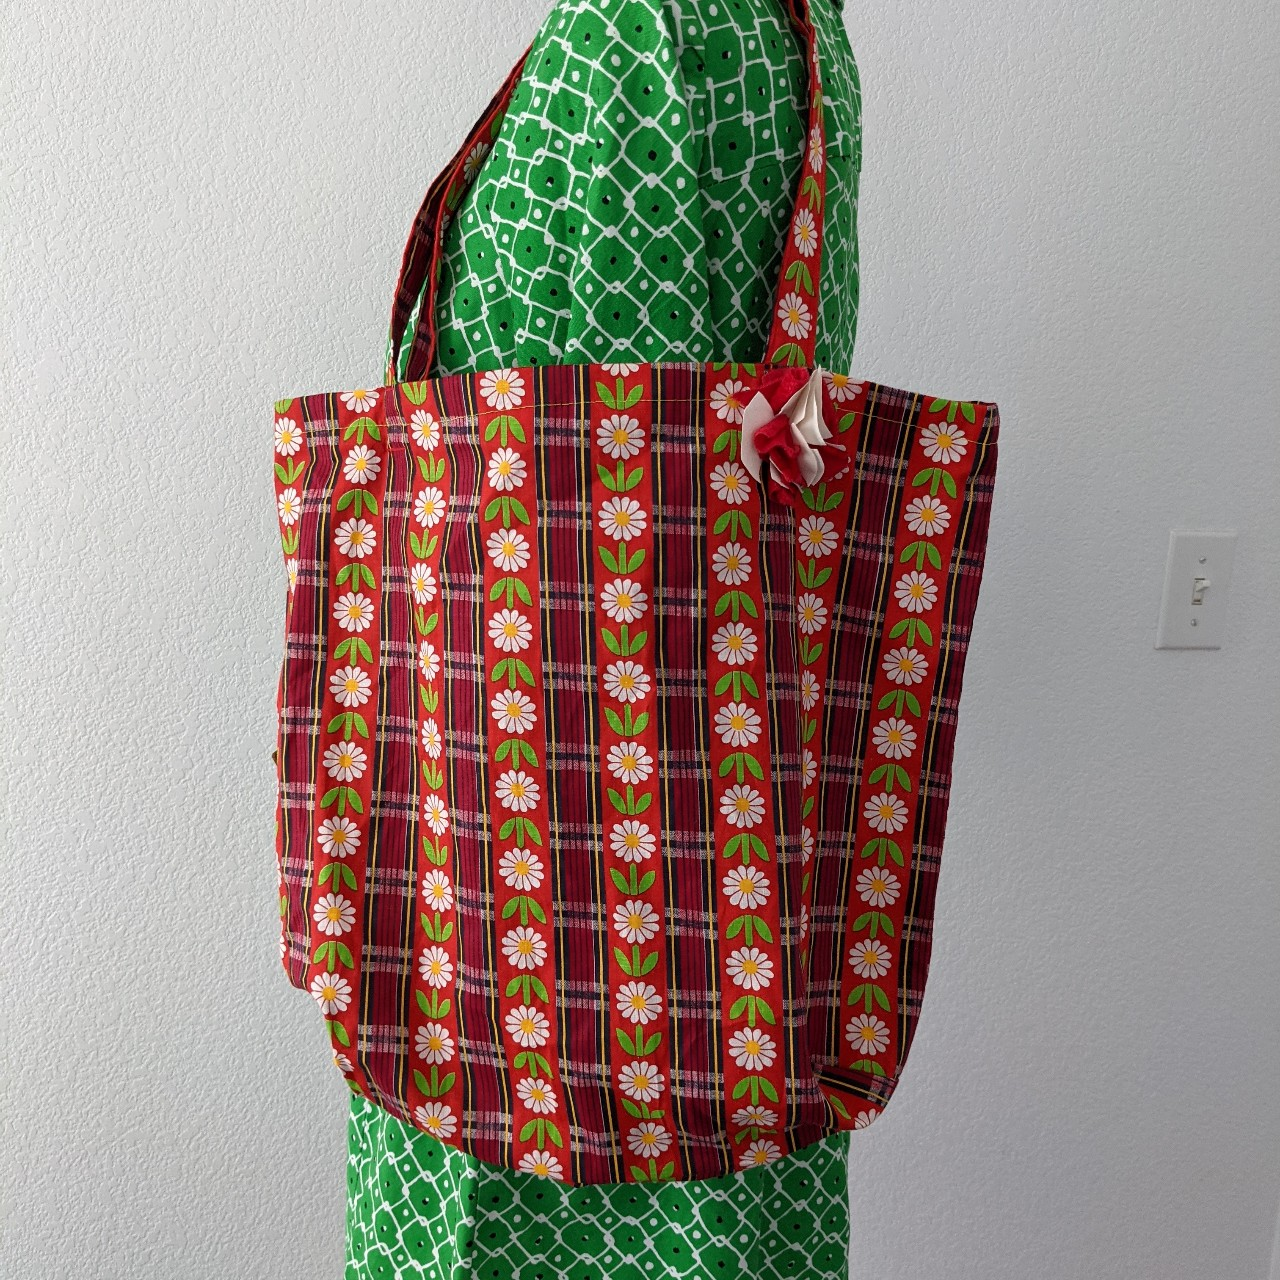 Product Image 1 - 1960s Daisy Chain Tote Bag Perfect